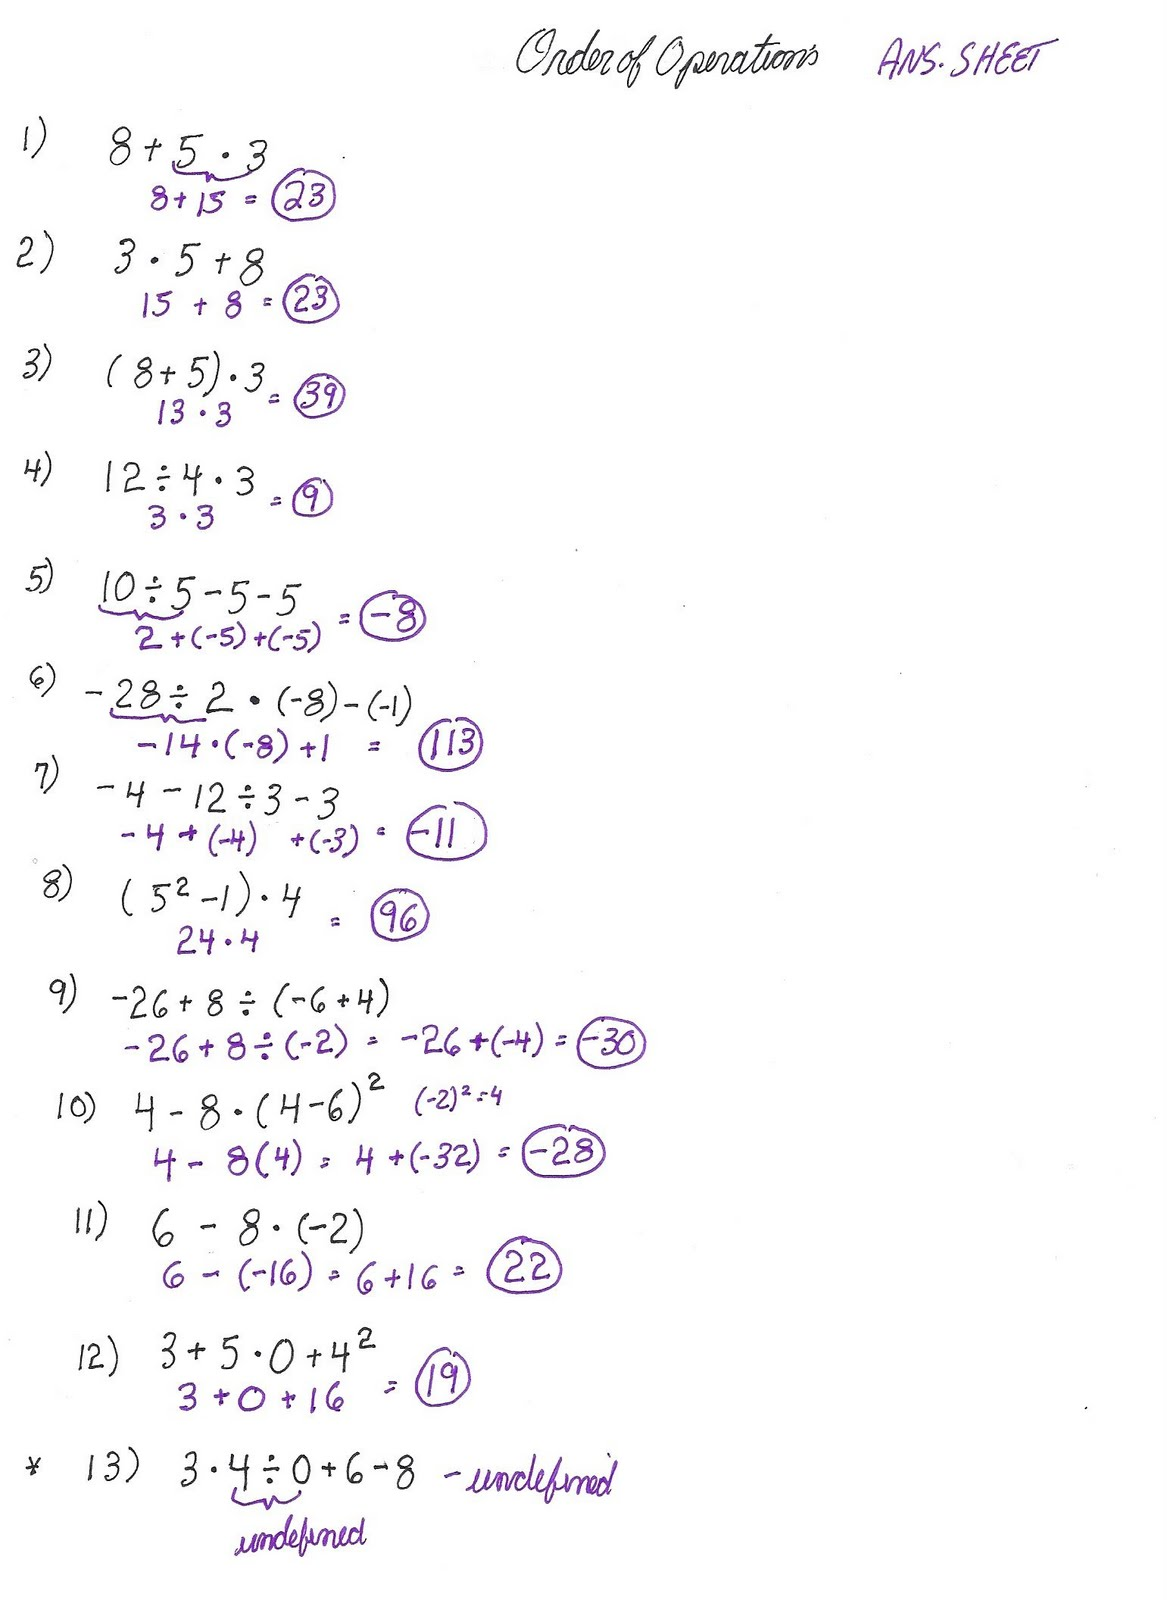 Cobb Adult Ed Math Order of Operations Worksheet Solutions – Orders of Operation Worksheet